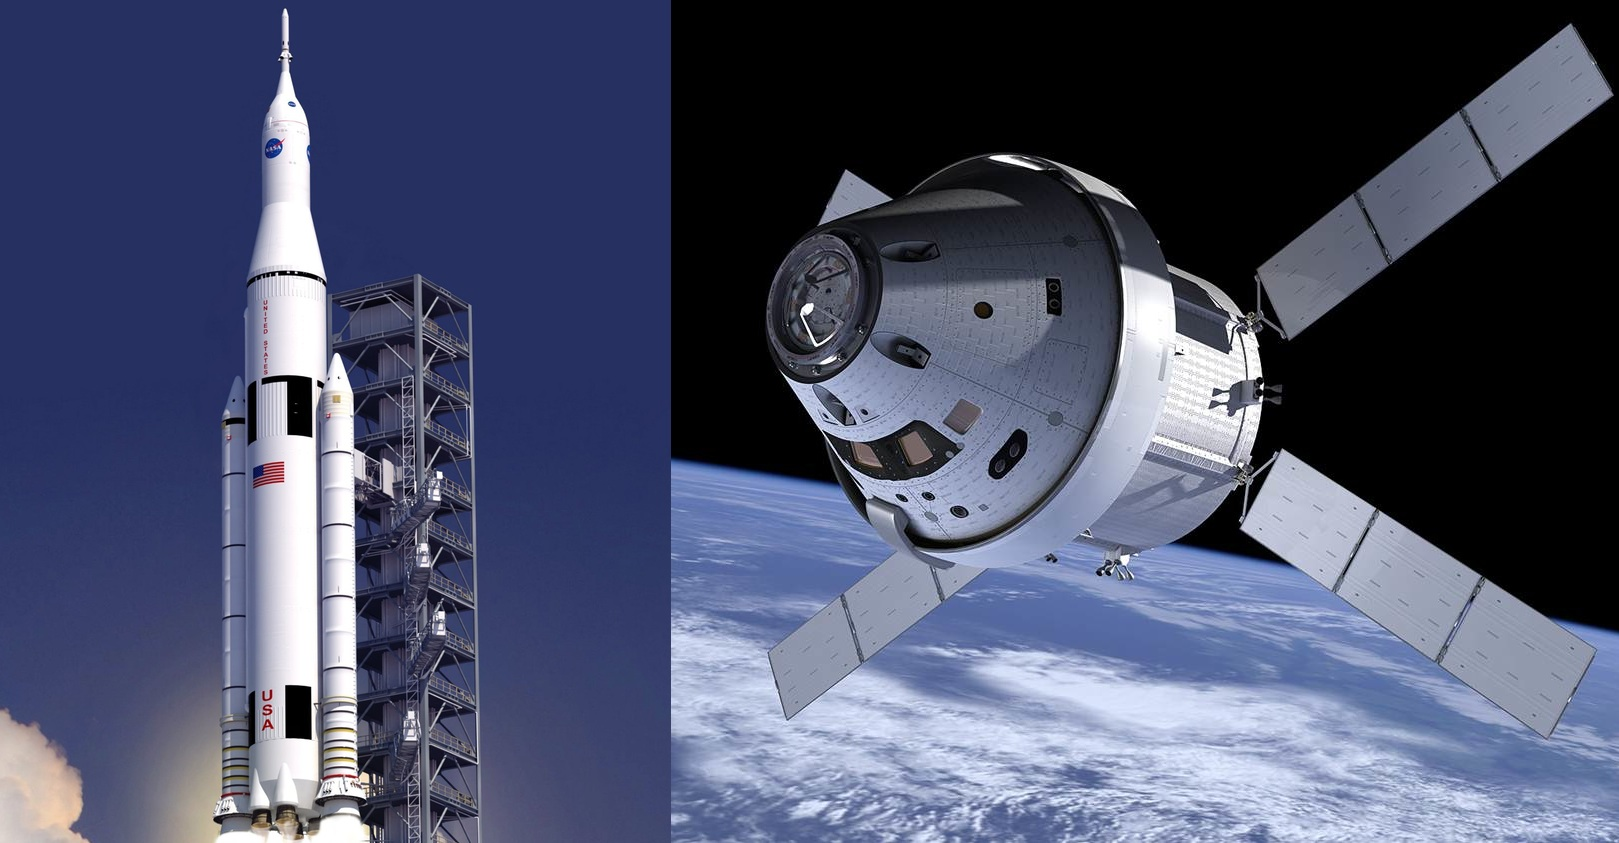 Artists' conception of the SLS launch vehicle, left, and the Orion capsule, right.